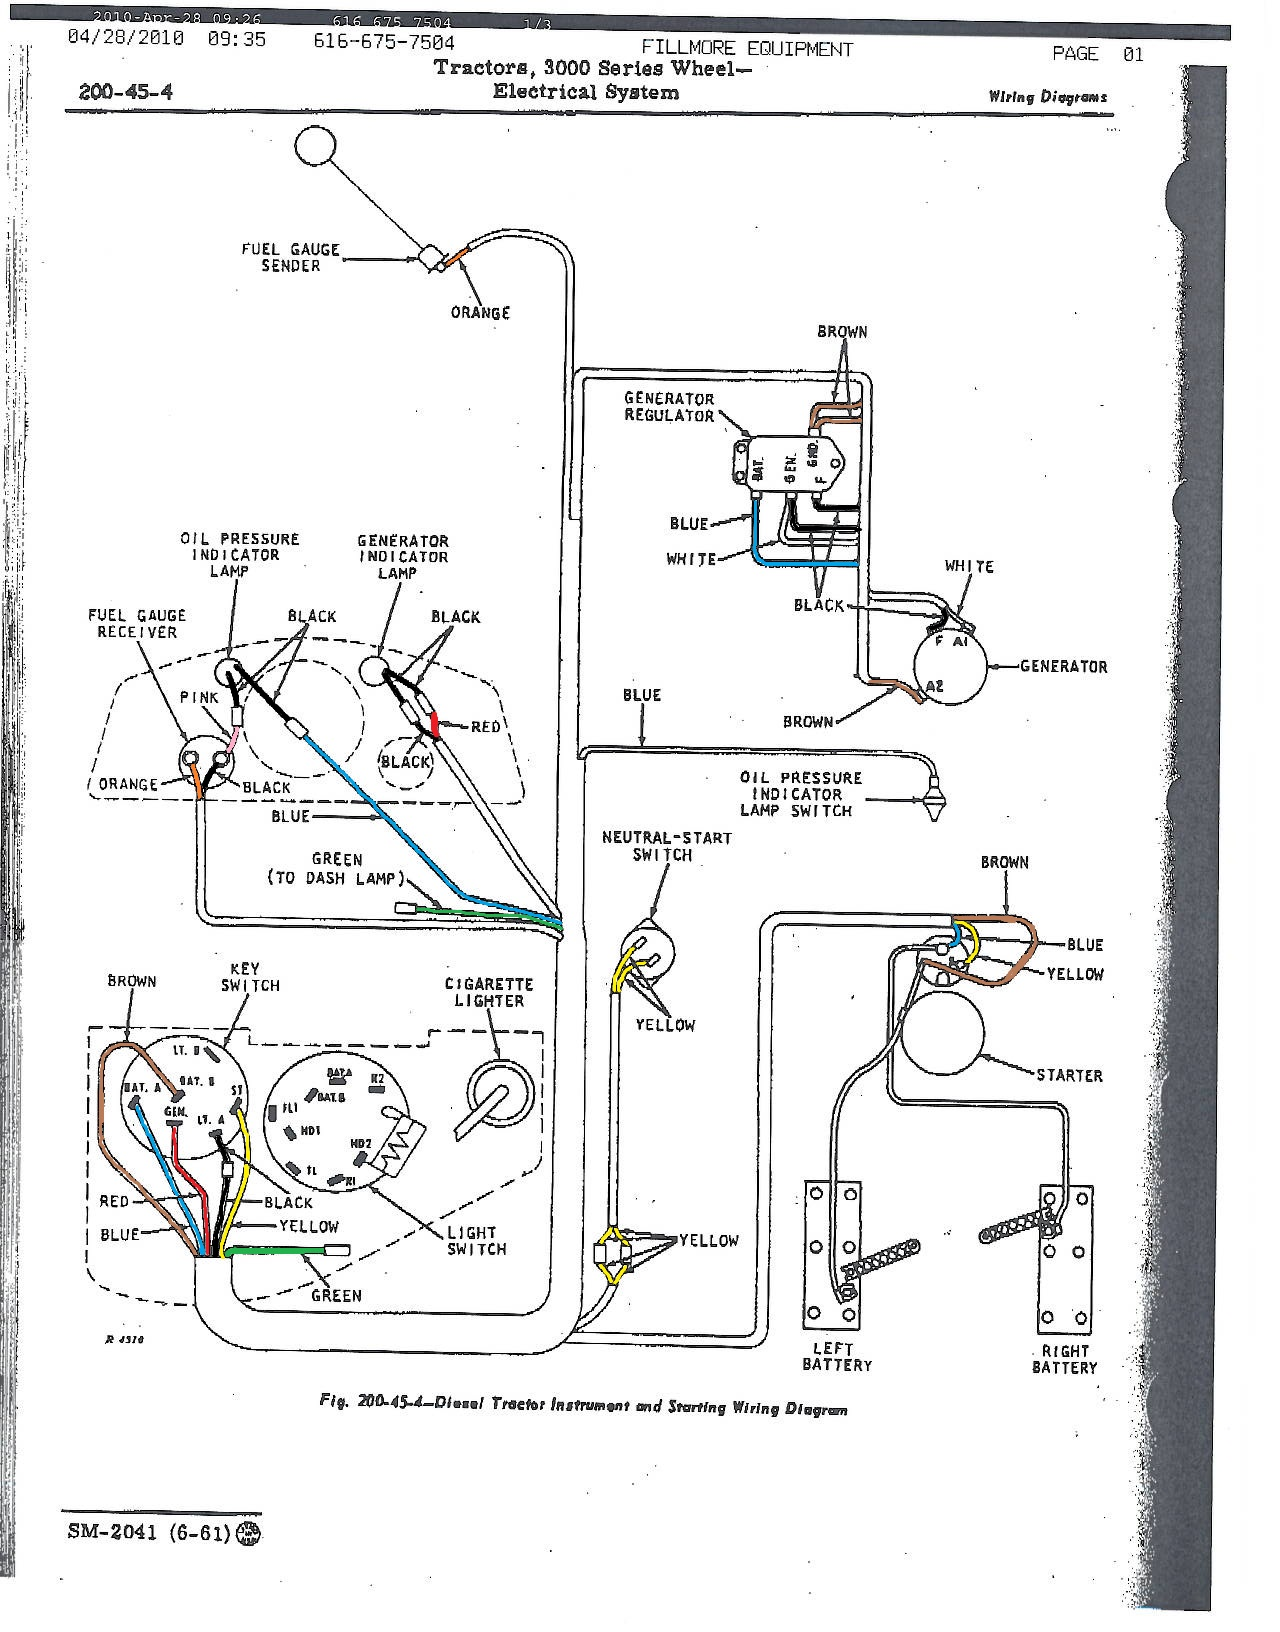 John Deere 3010 Diesel Wiring Diagram Archive Of Automotive 1967 Dodge Charger Diagrams Rh Charliemckinley Com